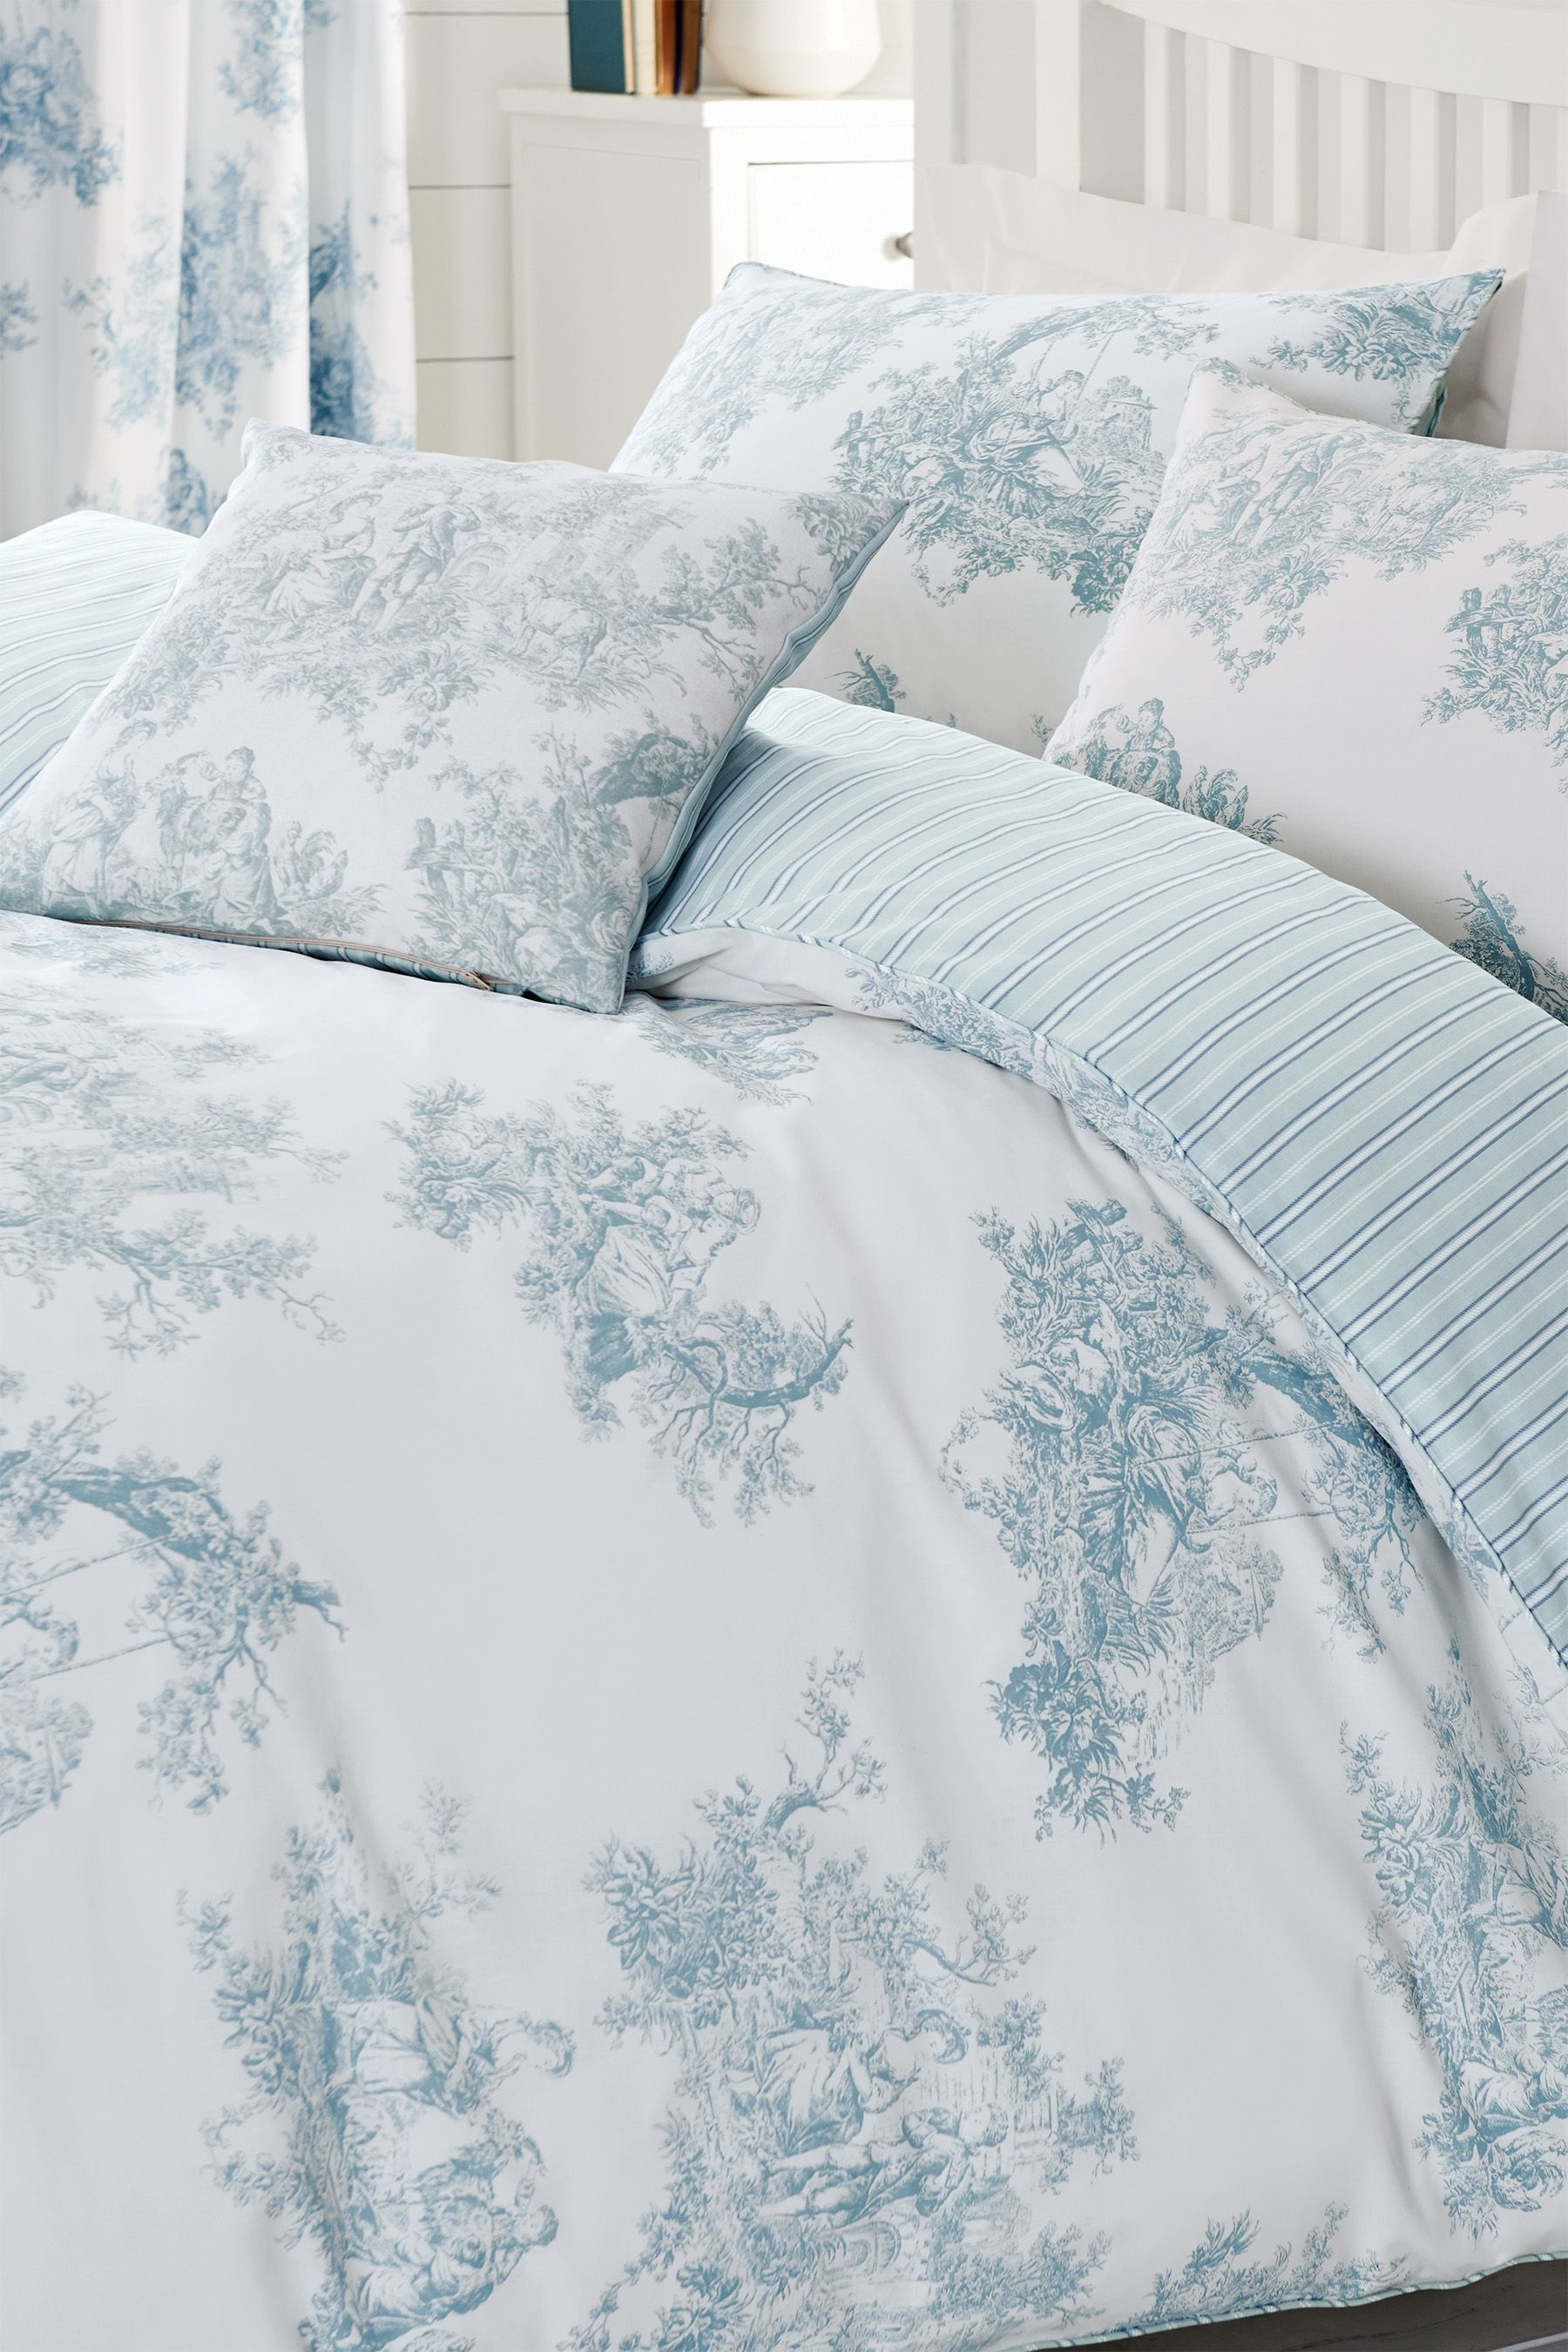 Toile Teal Print Bed Set from the Next UK online shop